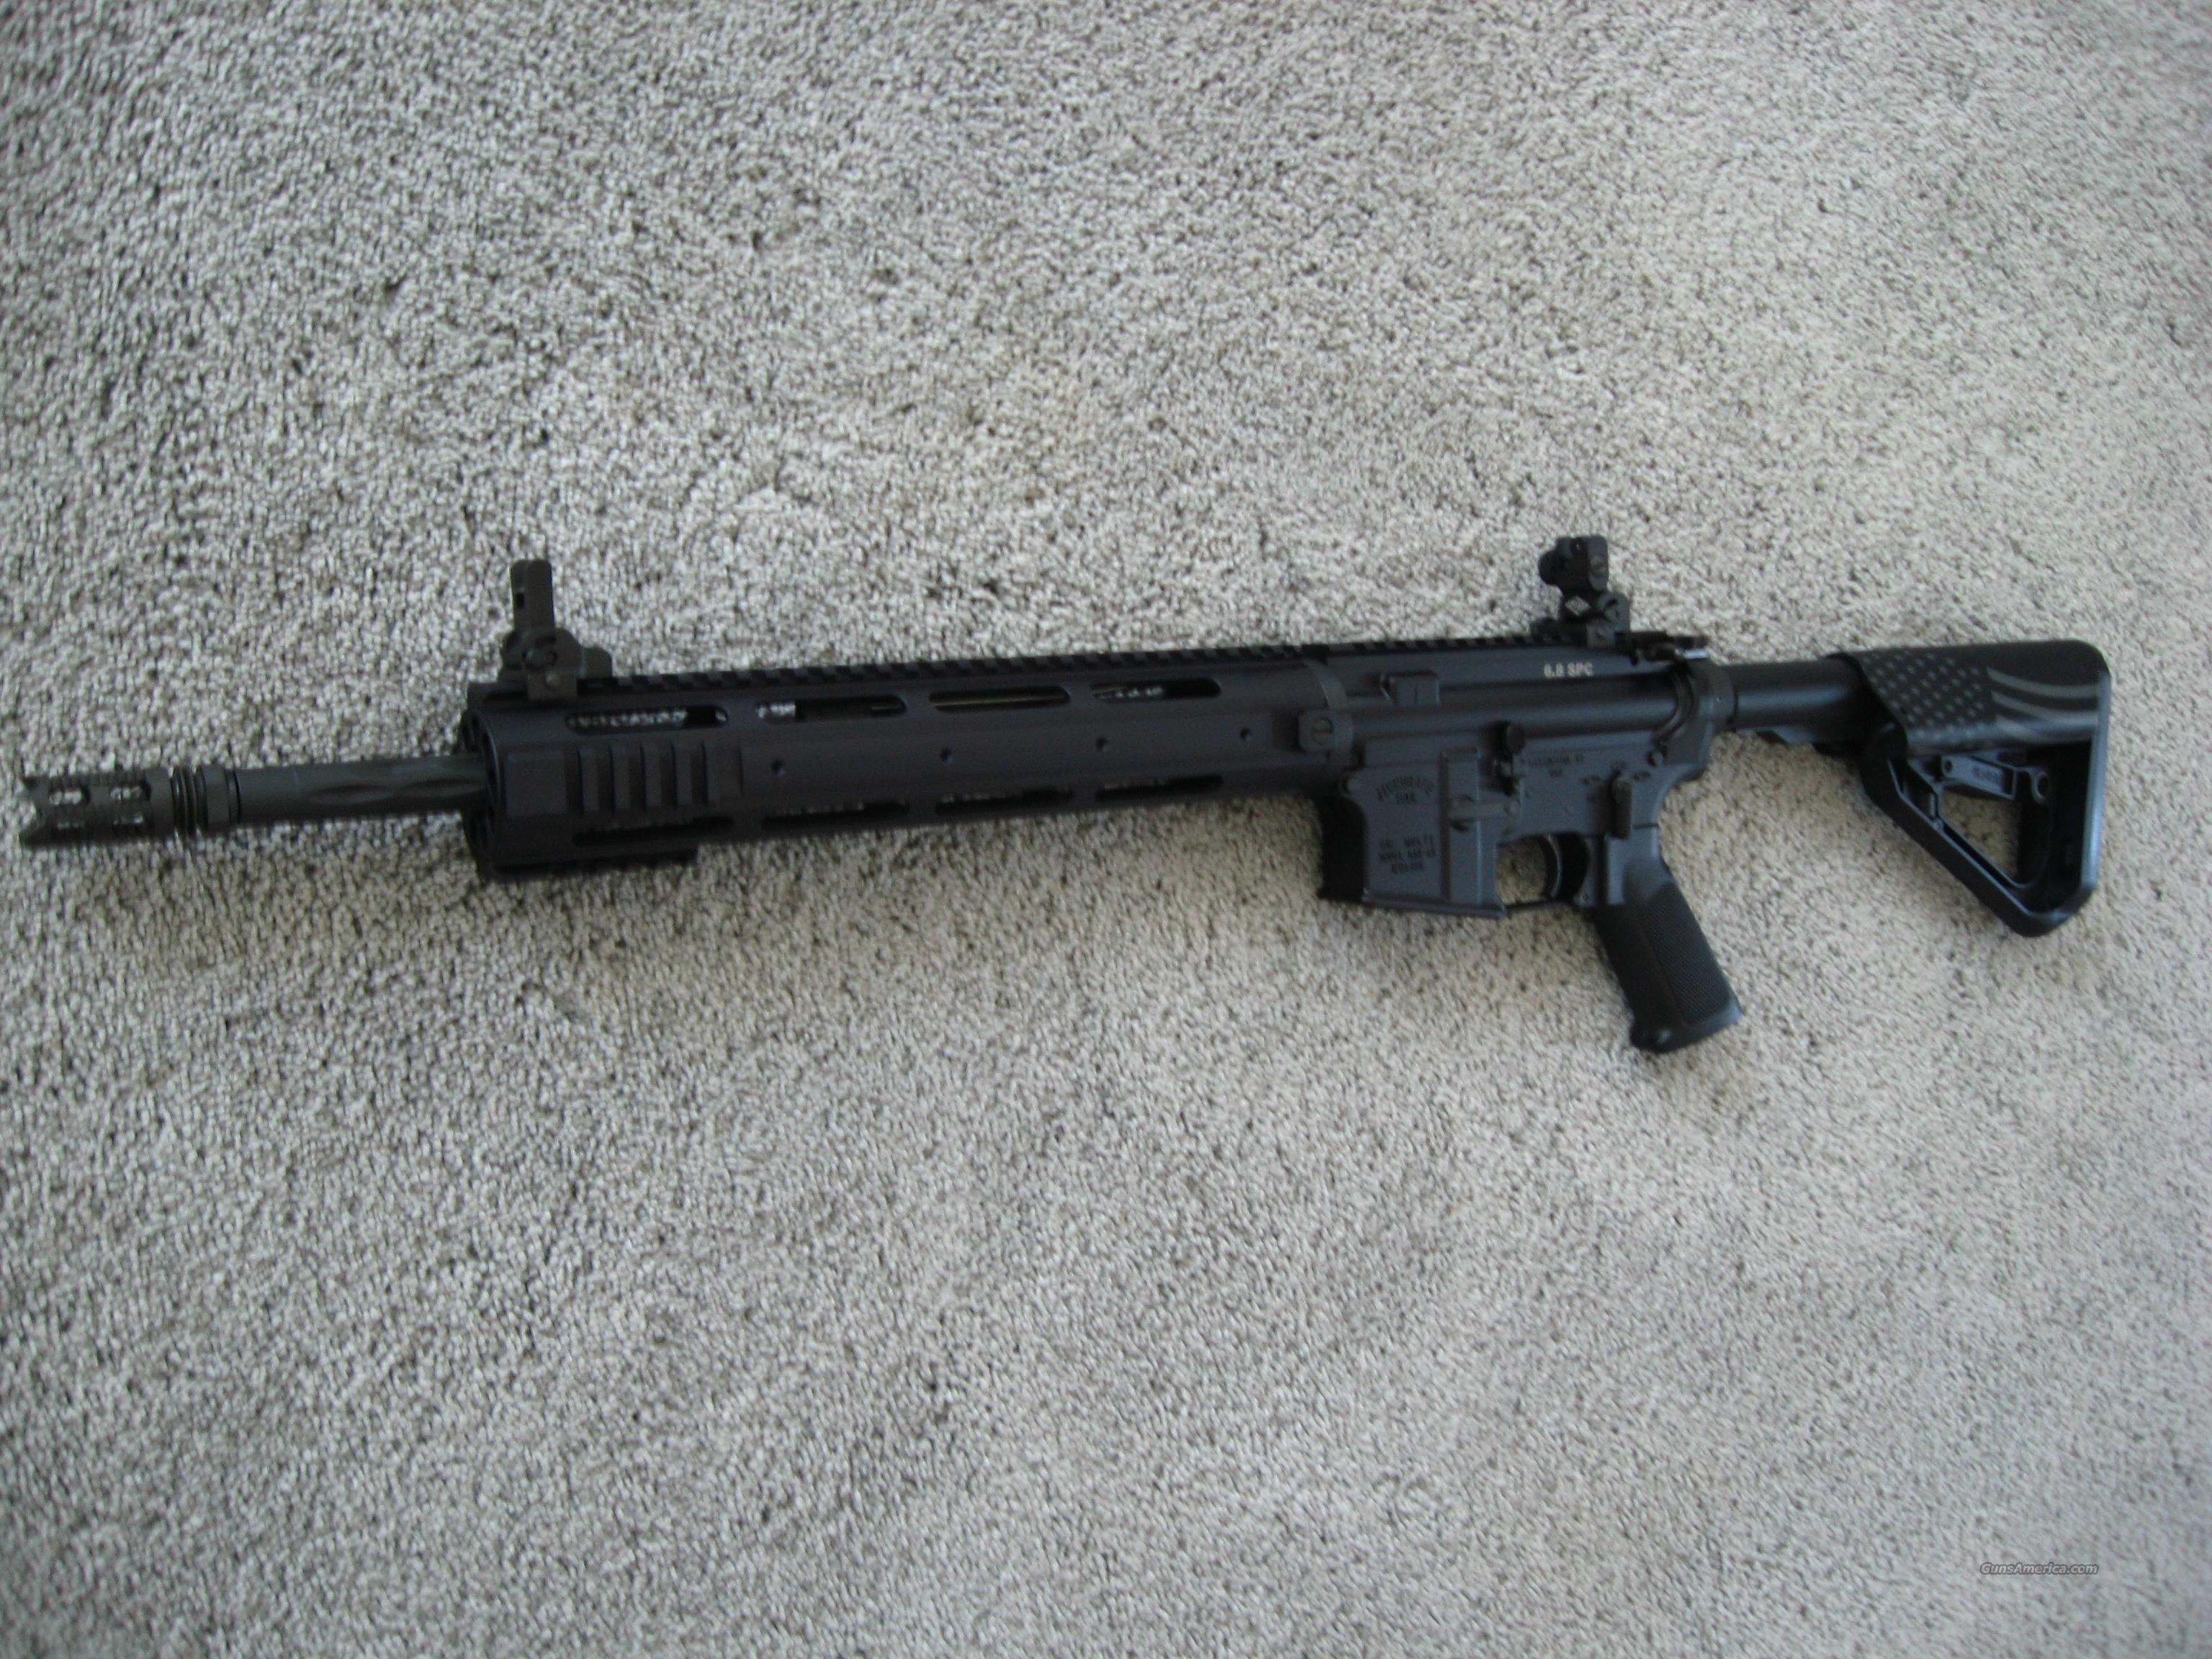 Accurate Armory 6.8 SPC AR-15 Carbine + 4 Mags - New  Guns > Rifles > AR-15 Rifles - Small Manufacturers > Complete Rifle